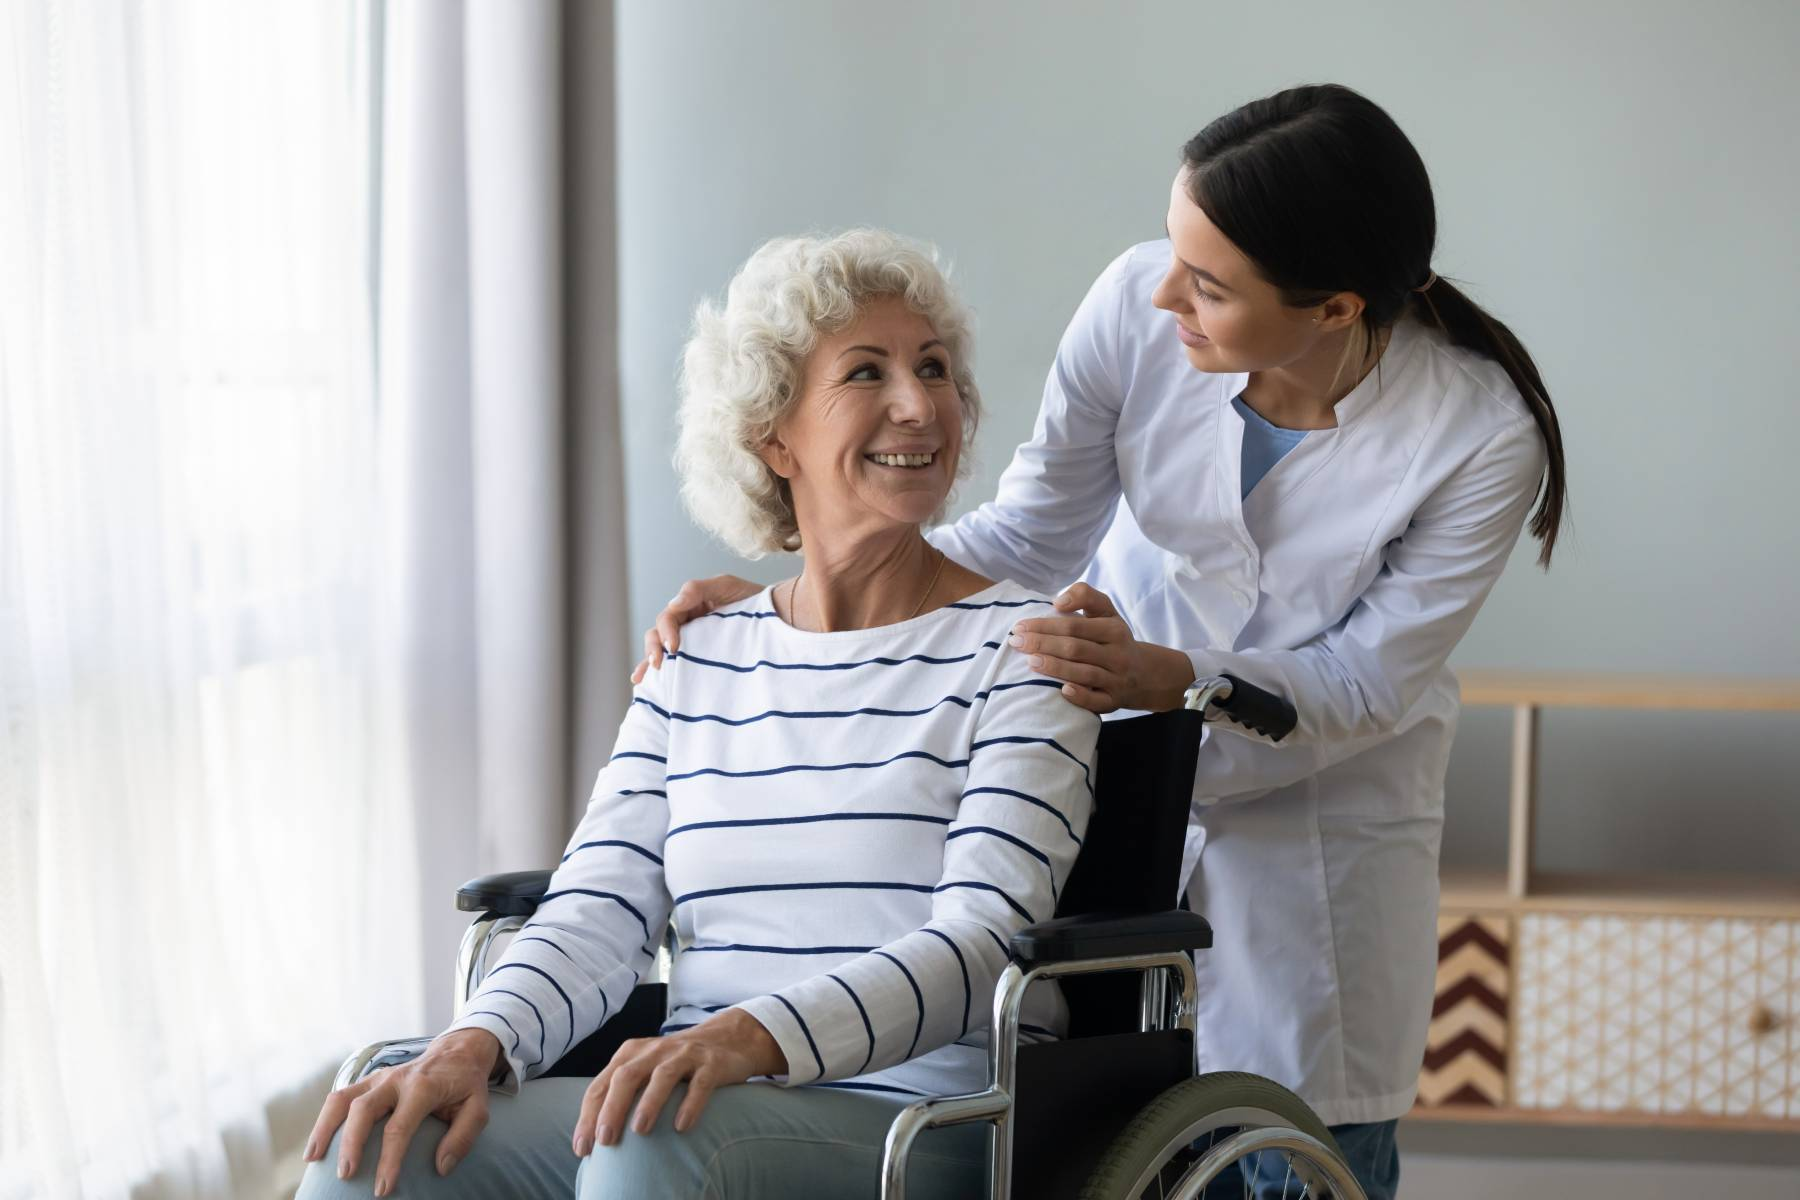 senior lady in assisted living while talking with a healthcare worker